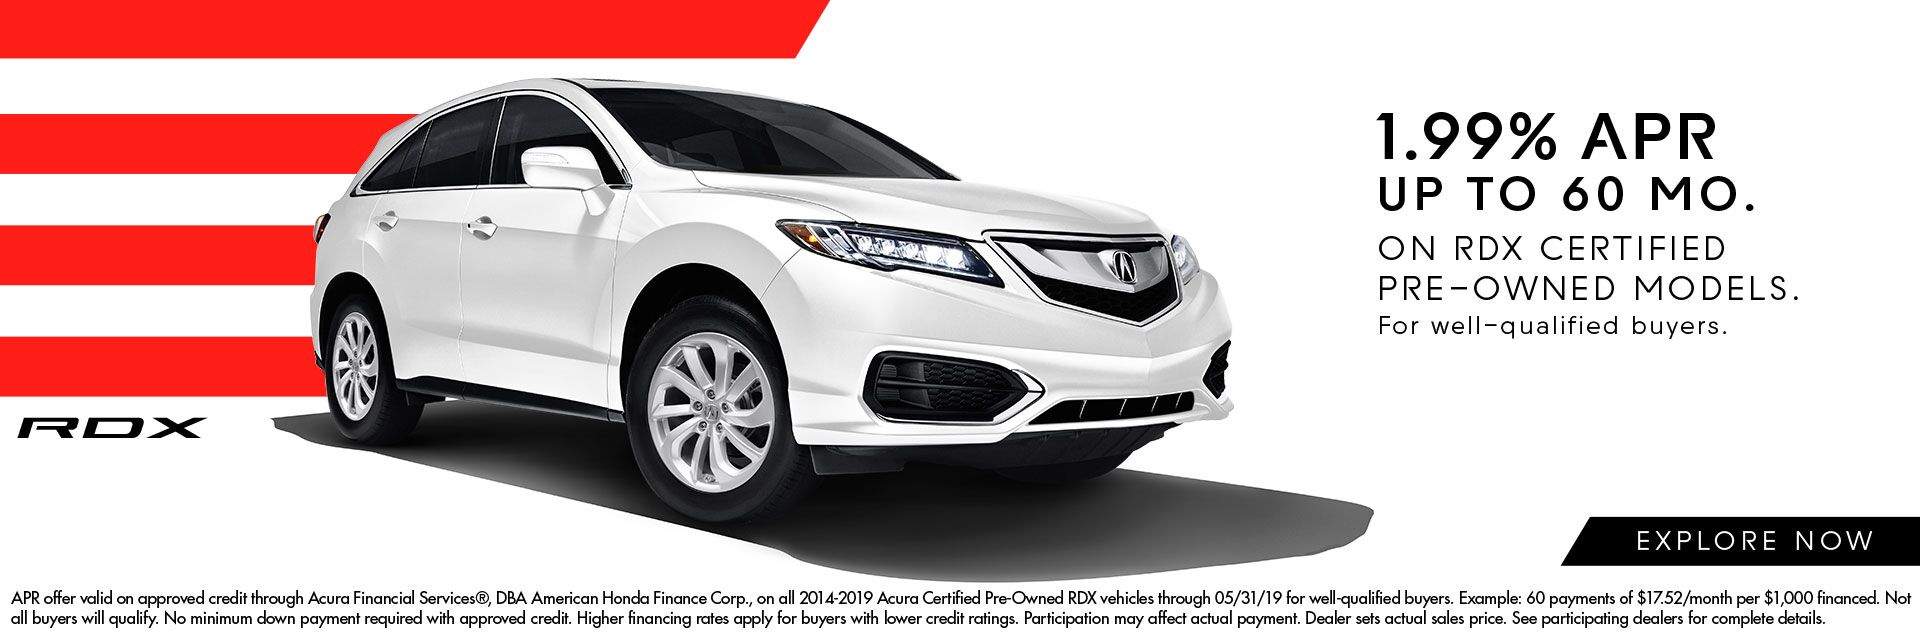 1.99% APR Incentives on Certified RDX at Karen Radley Acura